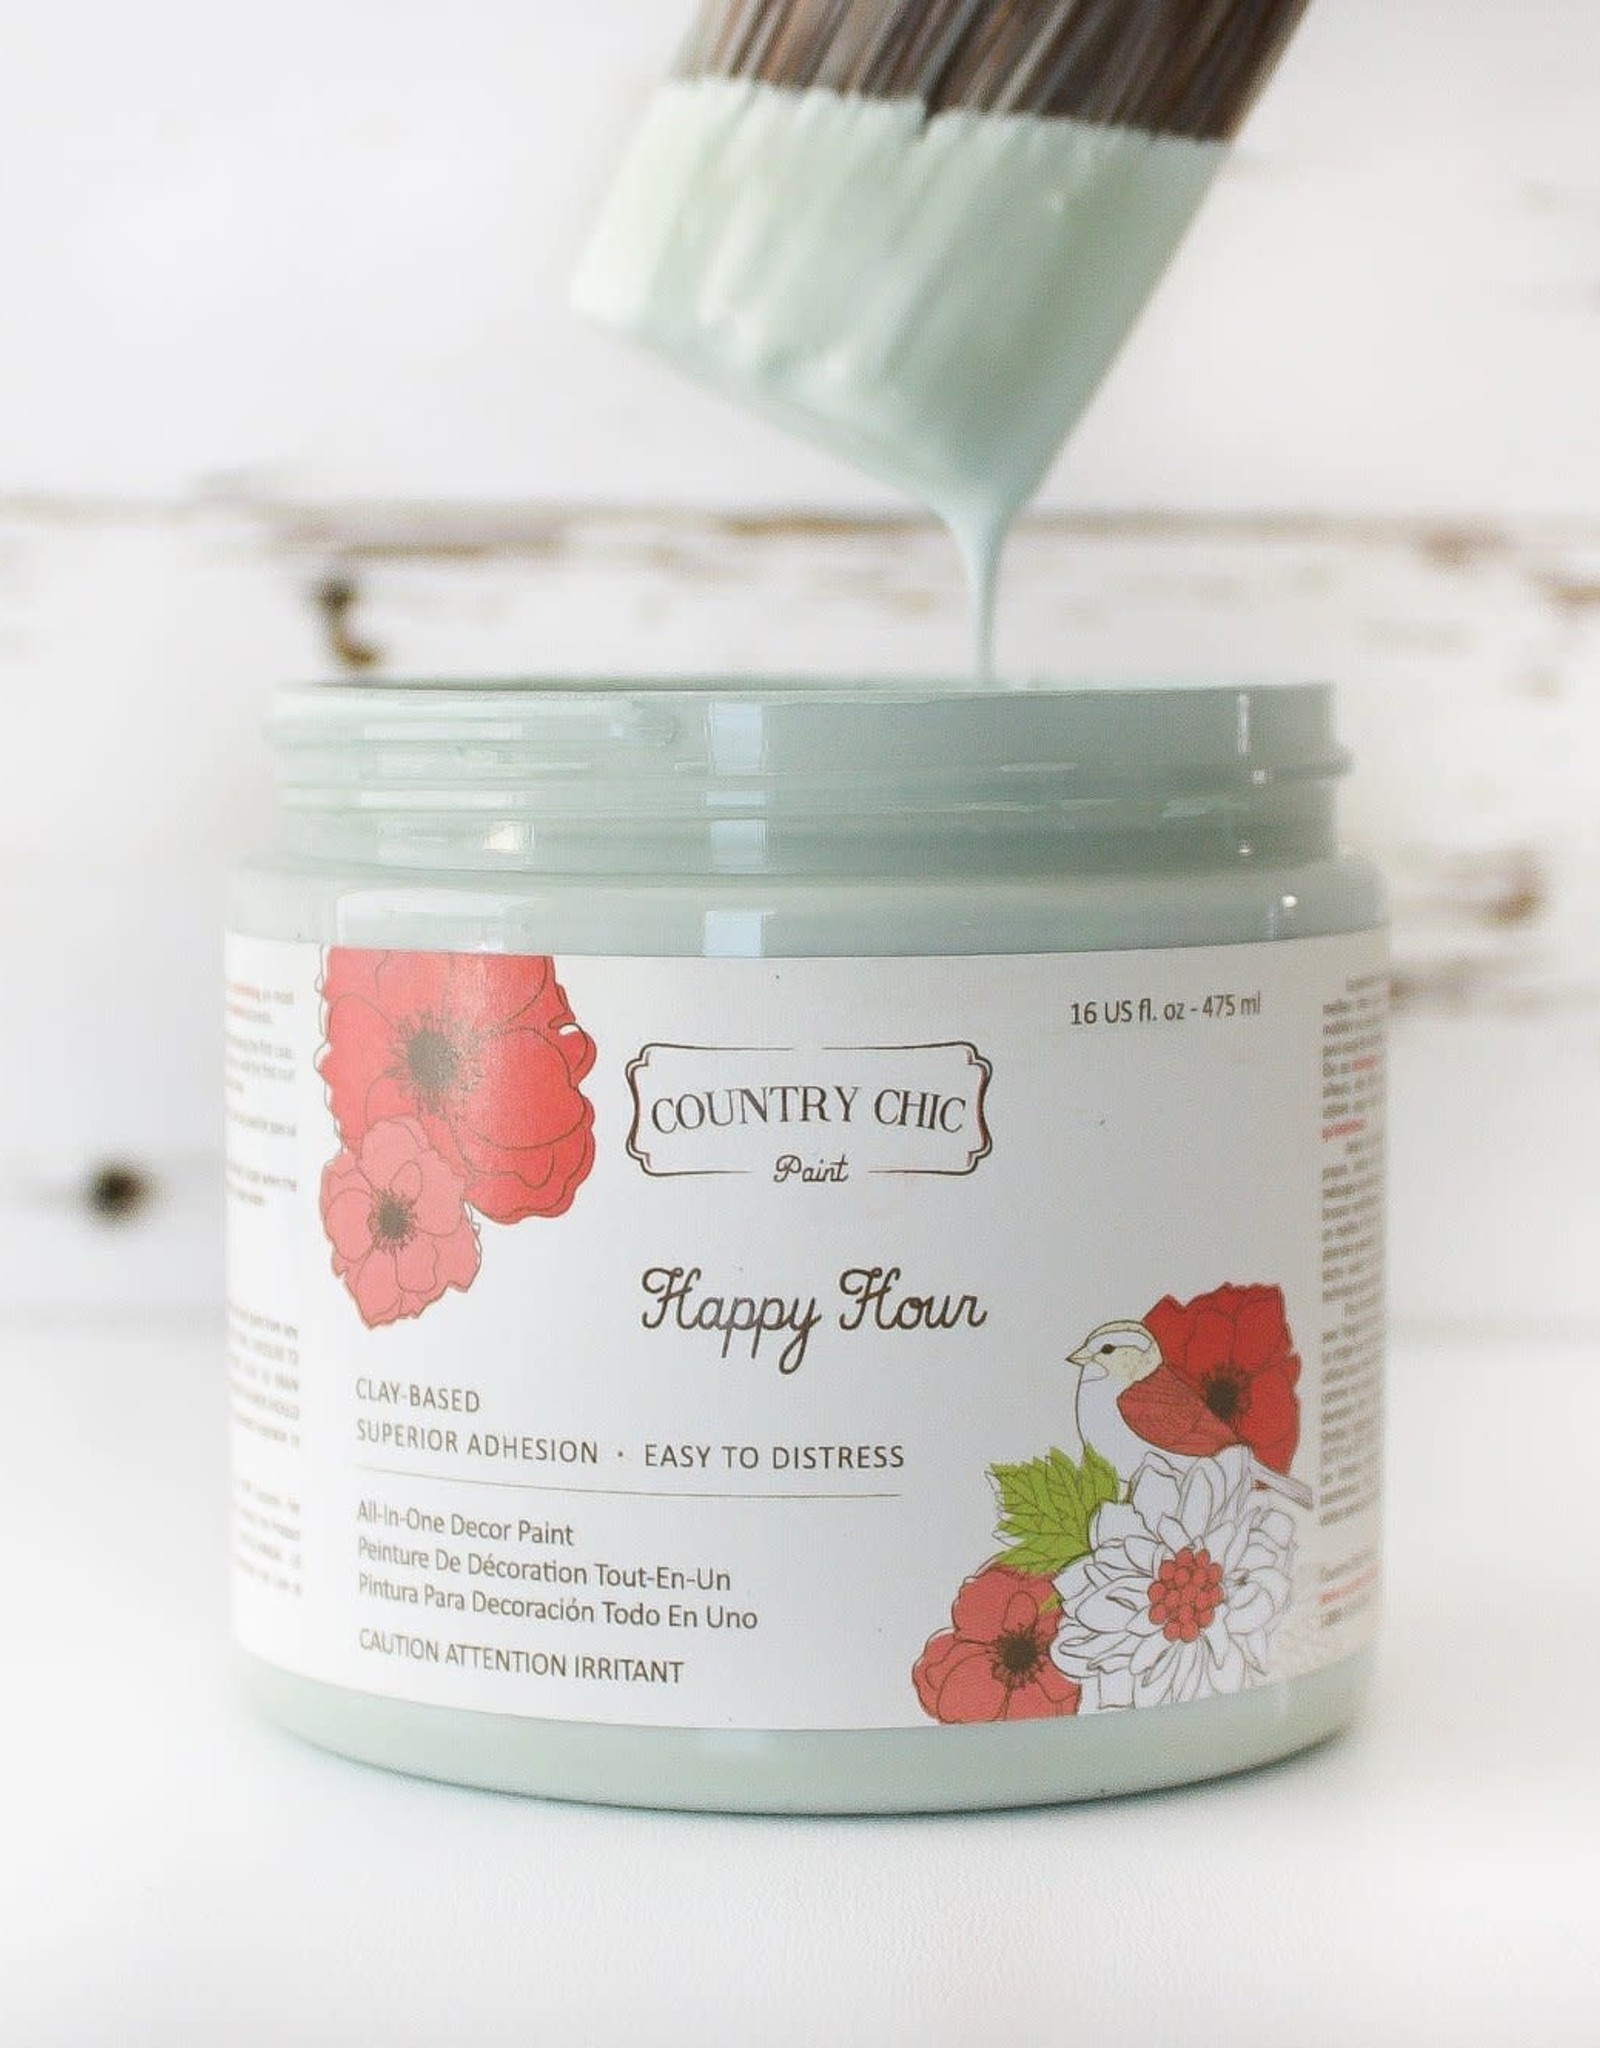 Country Chic Country Chic Paint Pint - 16oz Happy Hour